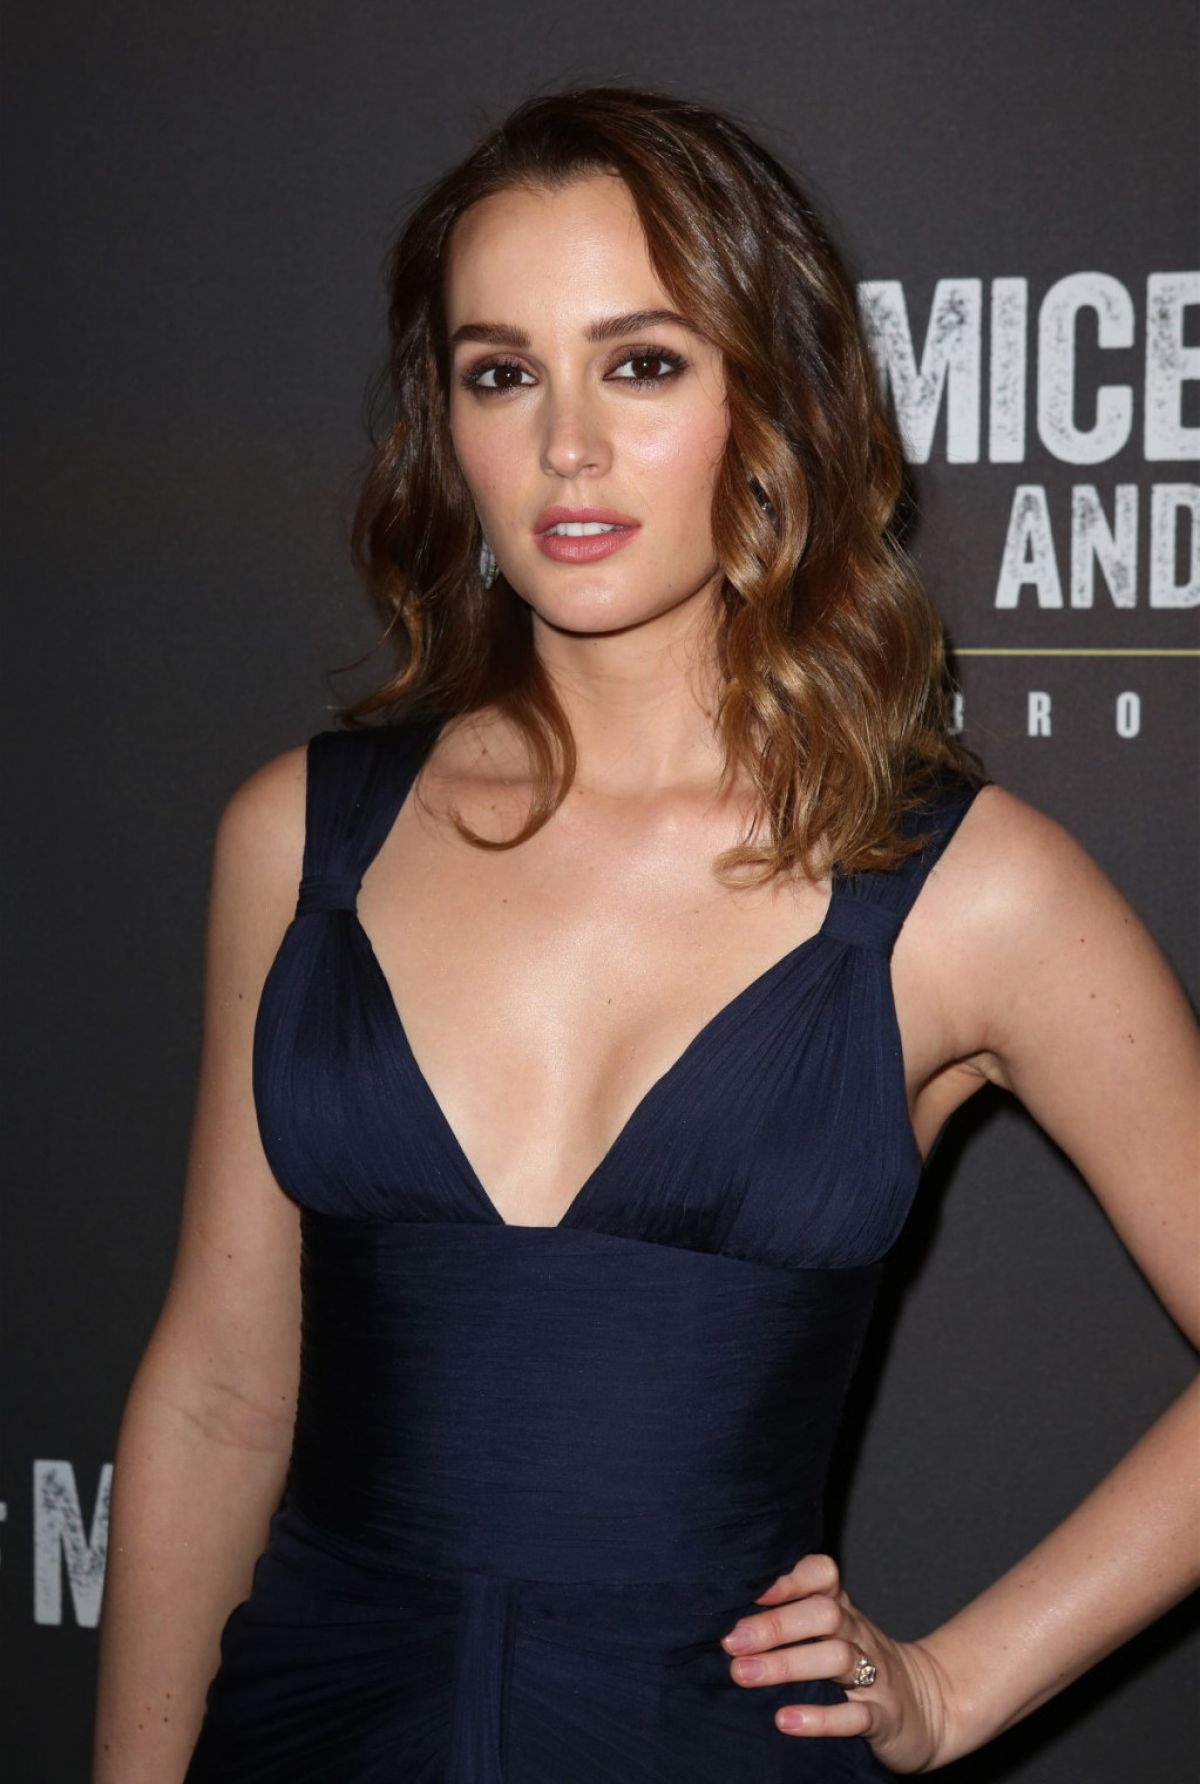 Leighton Meester Images Fashion Magazine Hd Wallpaper And: LEIGHTON MEESTER At Of Mice And Men Broadway Opening Night